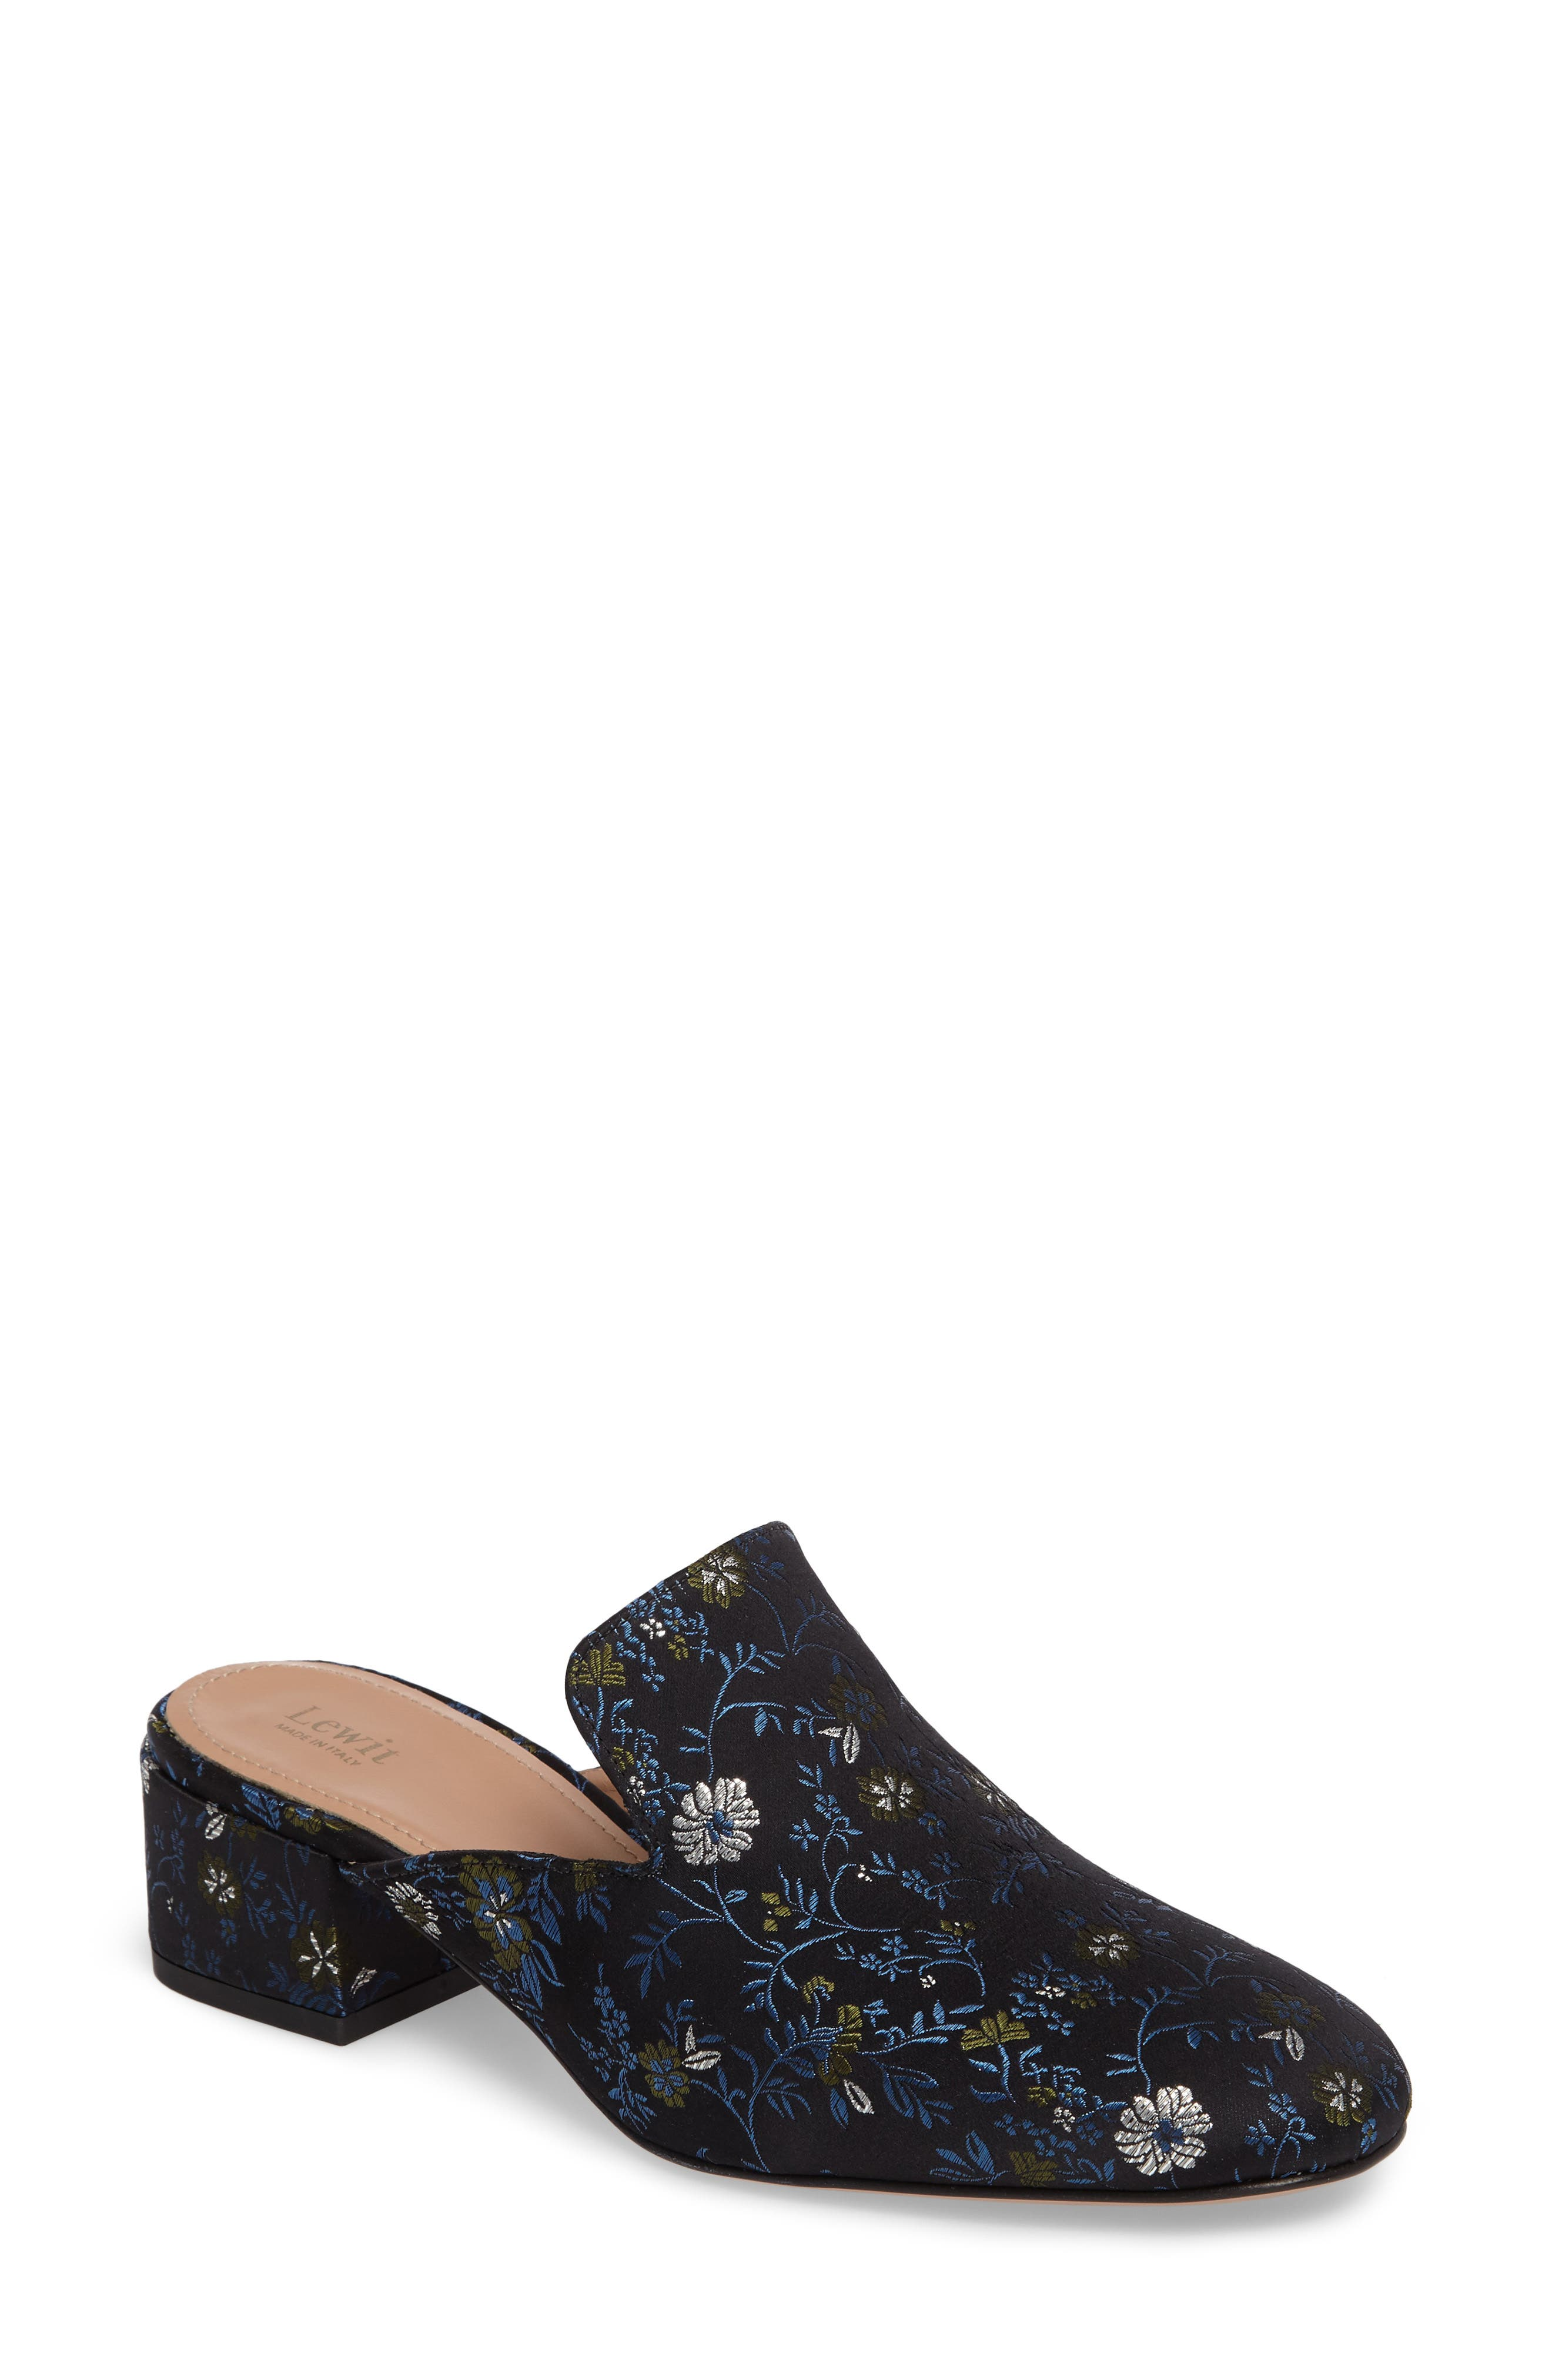 Bianca Embroidered Loafer Mule,                             Main thumbnail 1, color,                             Black/ Blue Floral Fabric